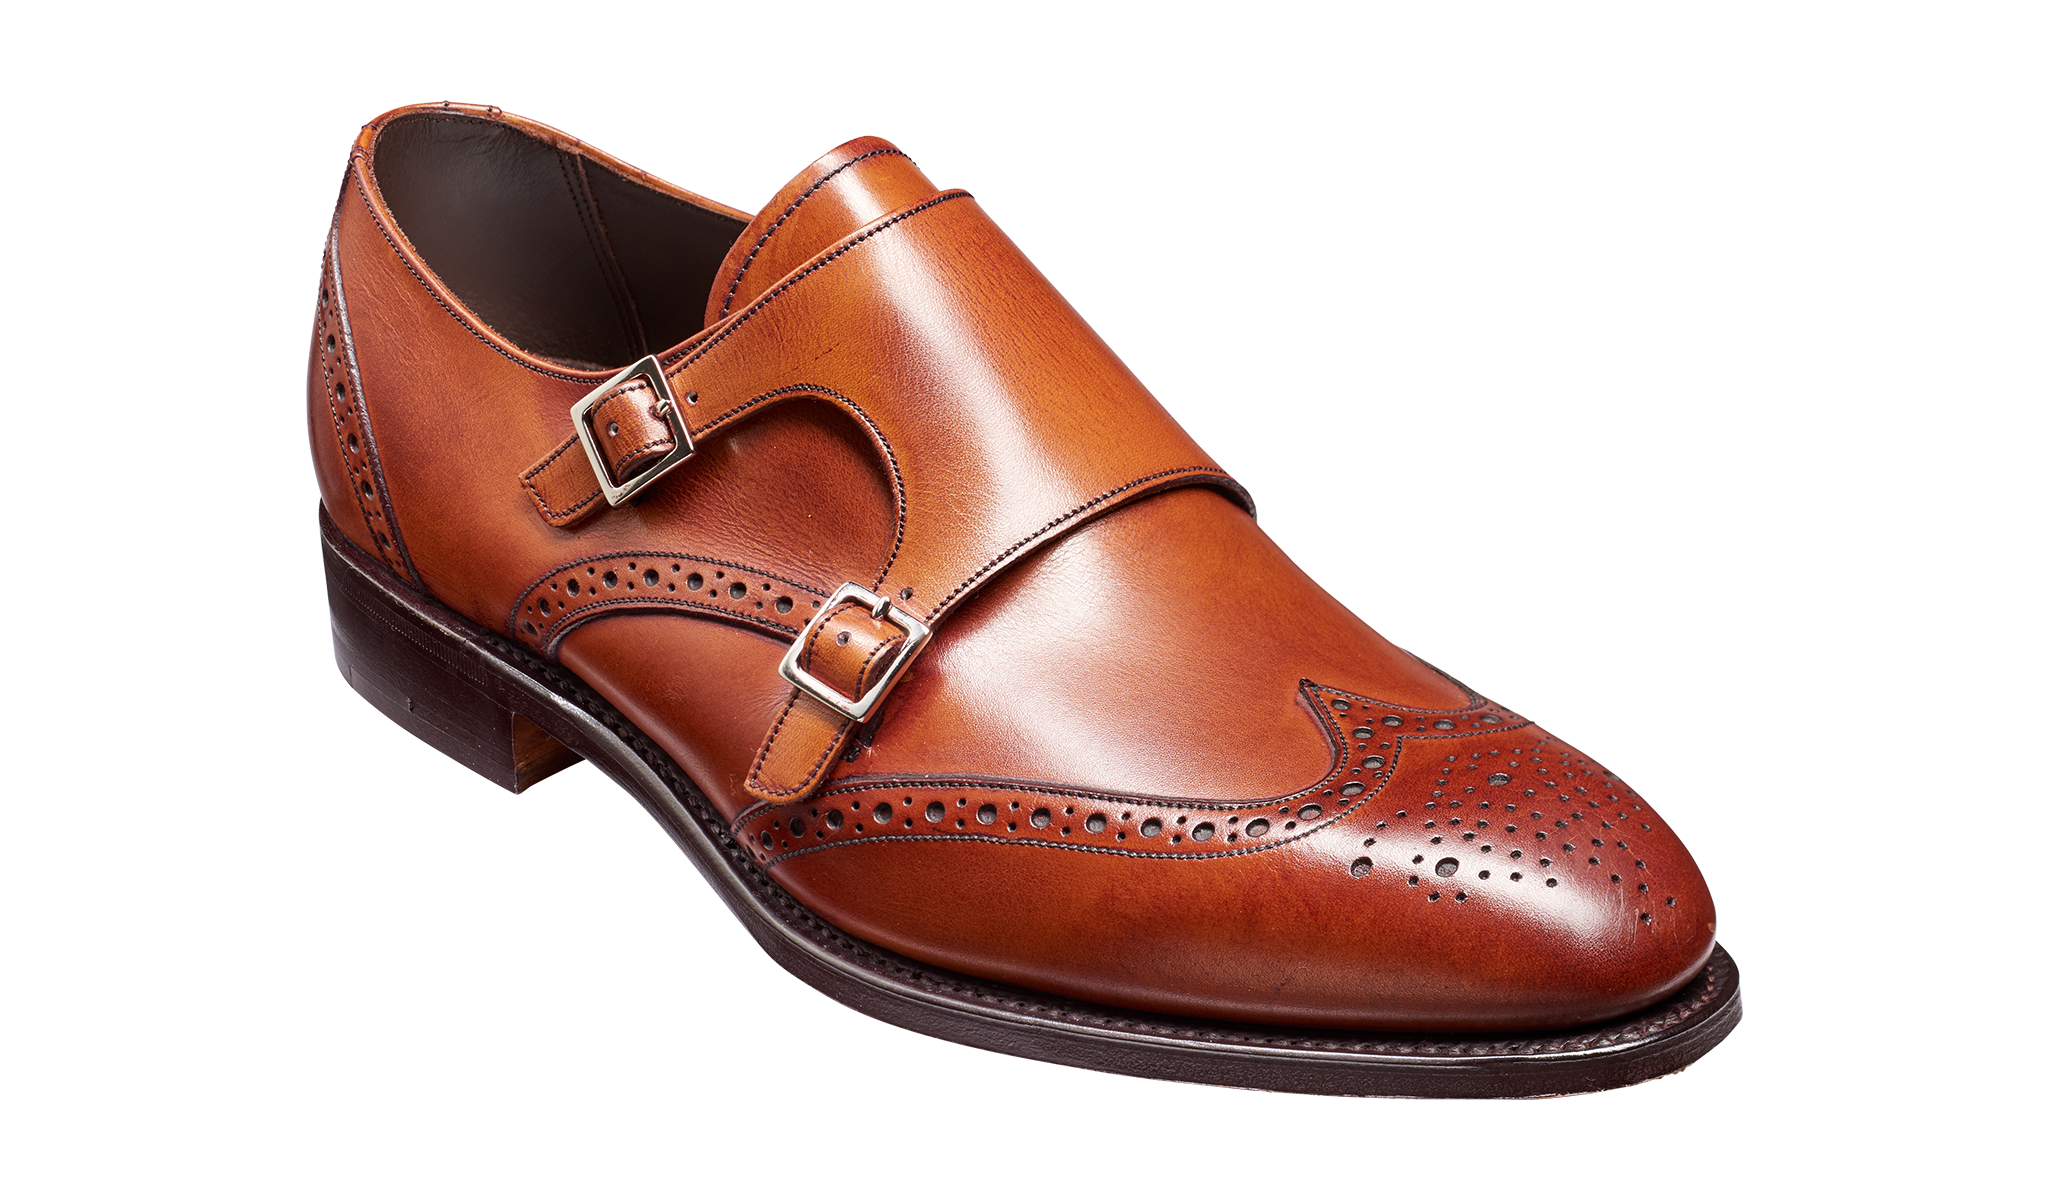 Men's brown monk strap shoe by Barker